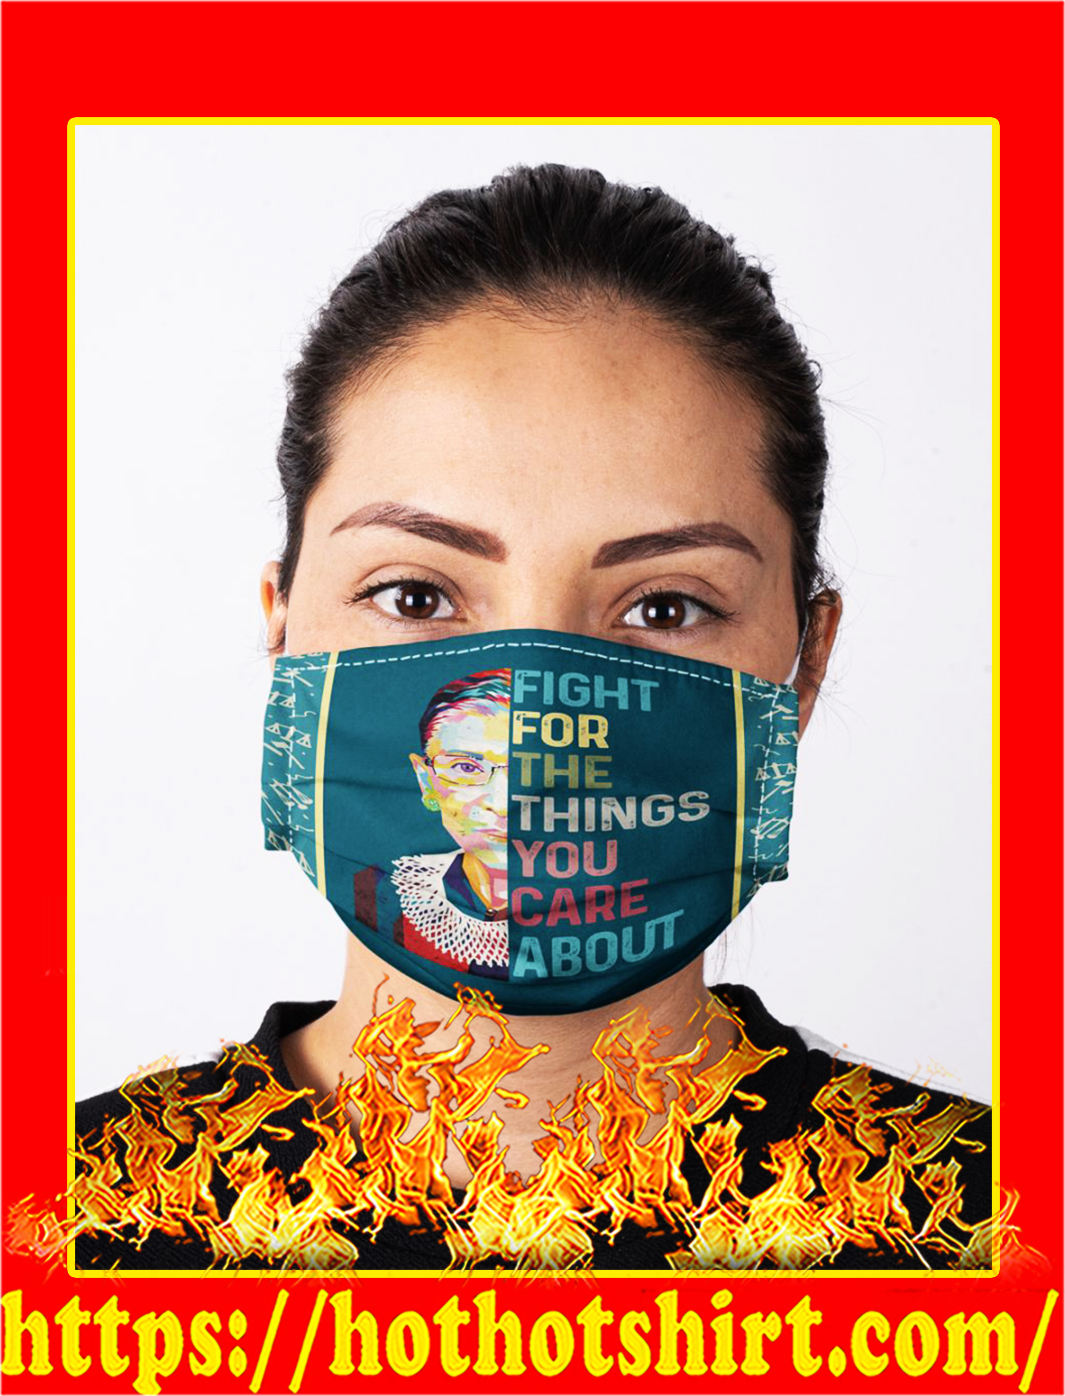 Fight for the things you care about ruth bader ginsburg face mask- pic 1